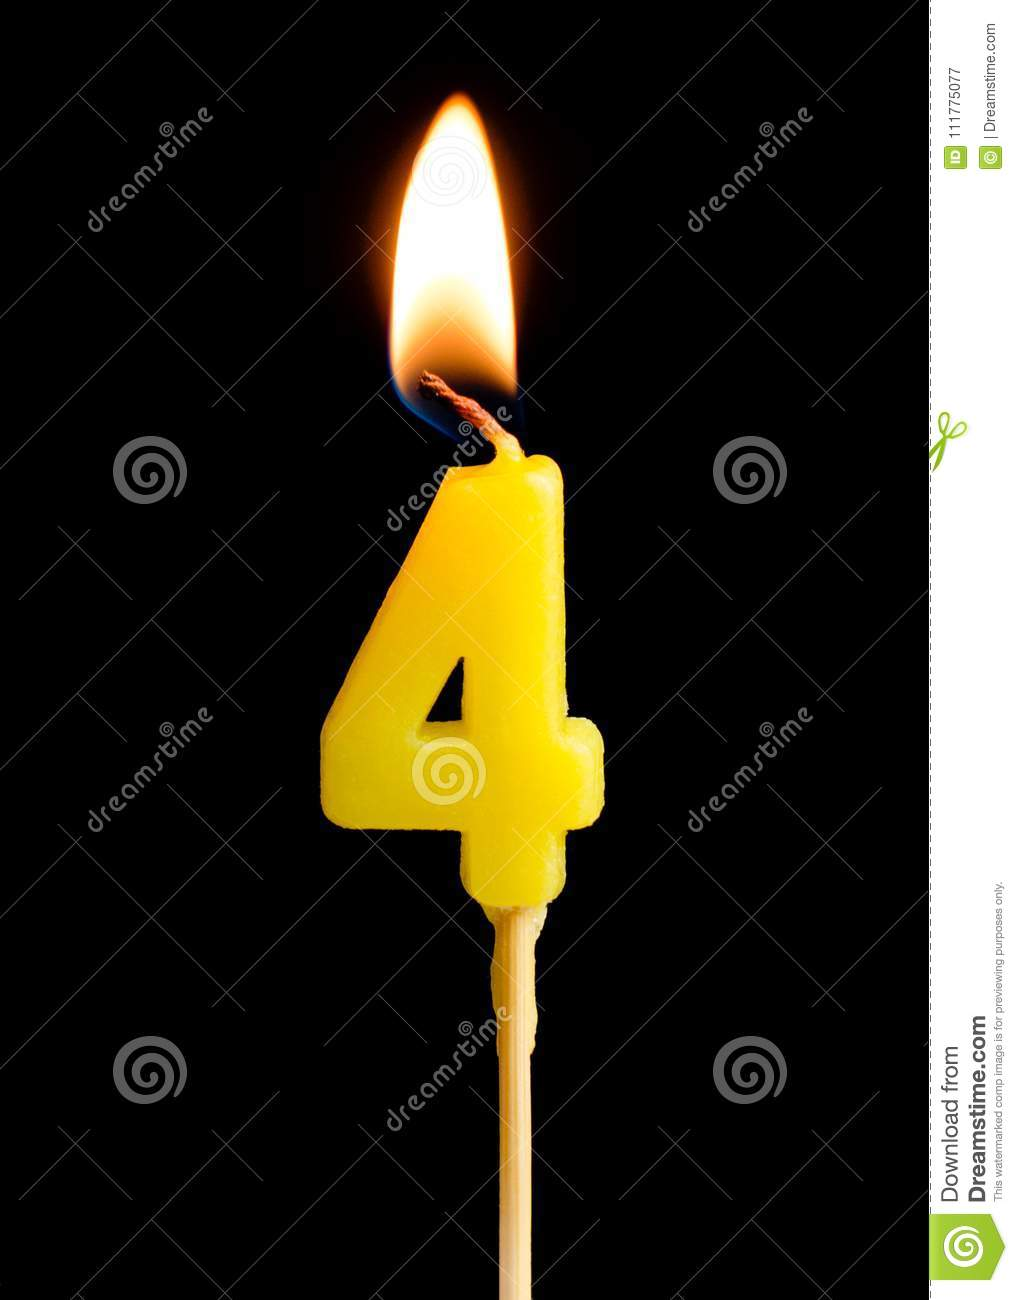 Burning candle in the form of four figures numbers, dates for cake isolated on black background.